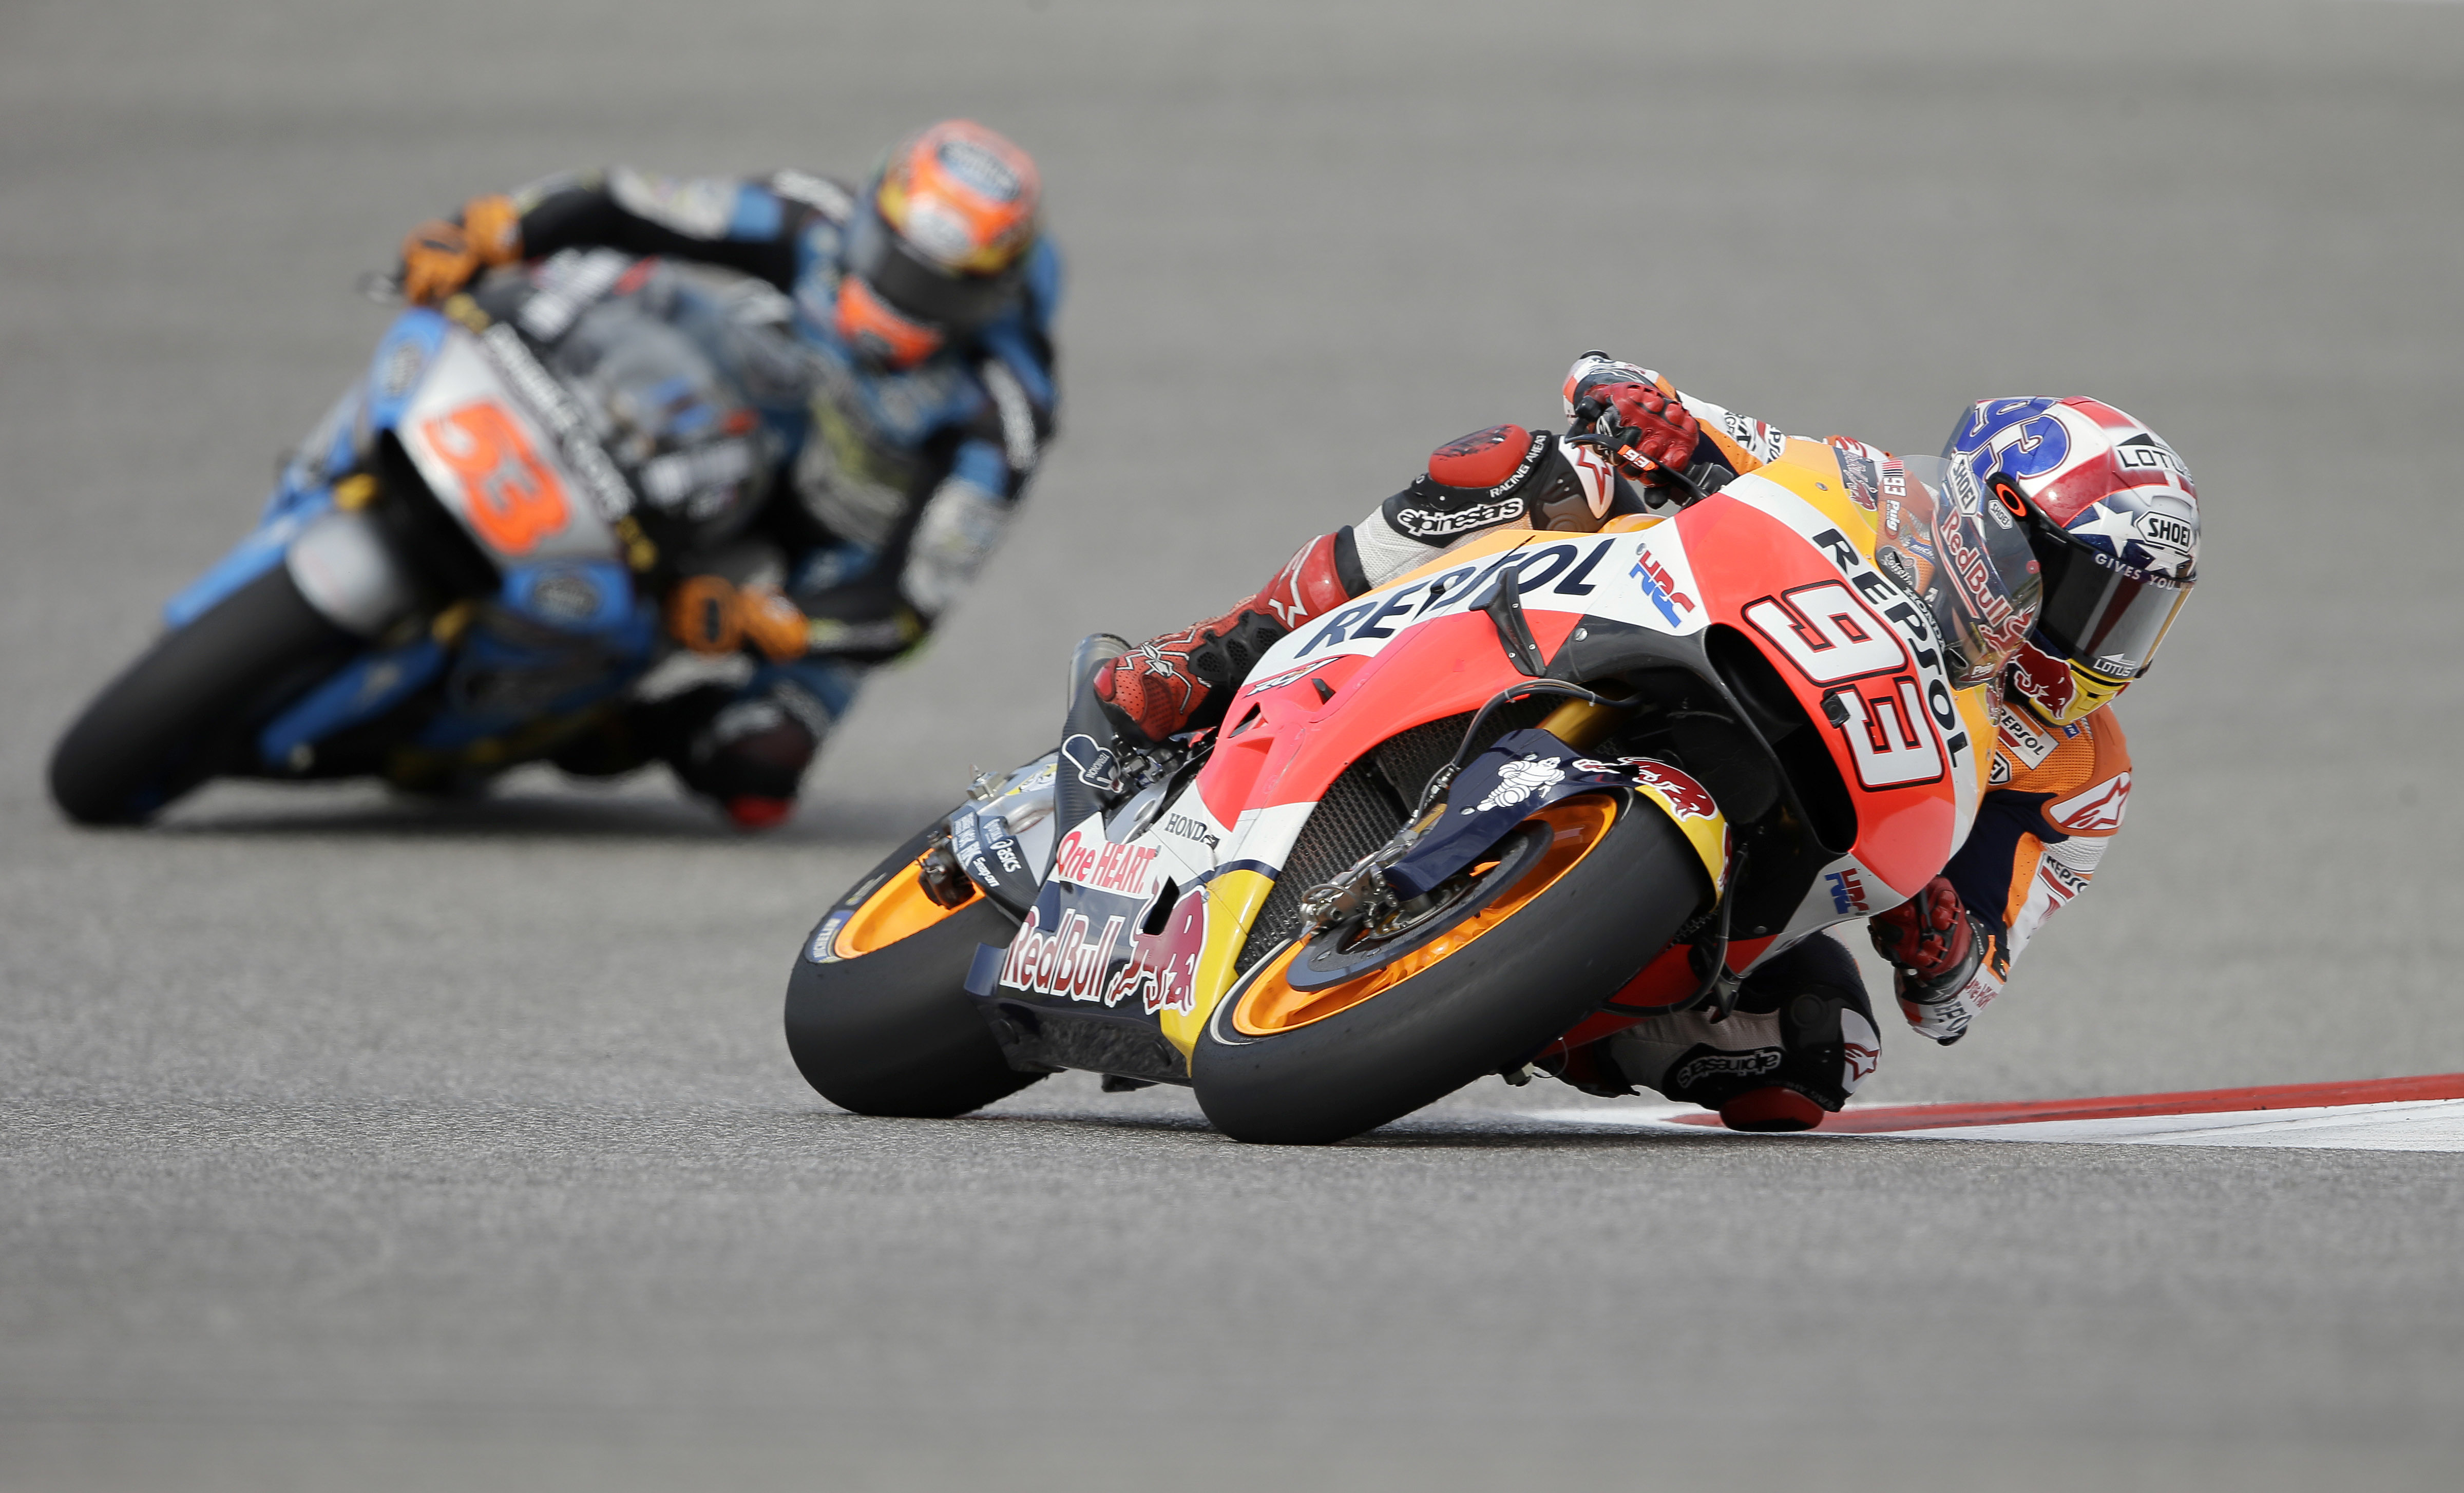 Marquez takes pole position at Grand Prix of the Americas   WTOP